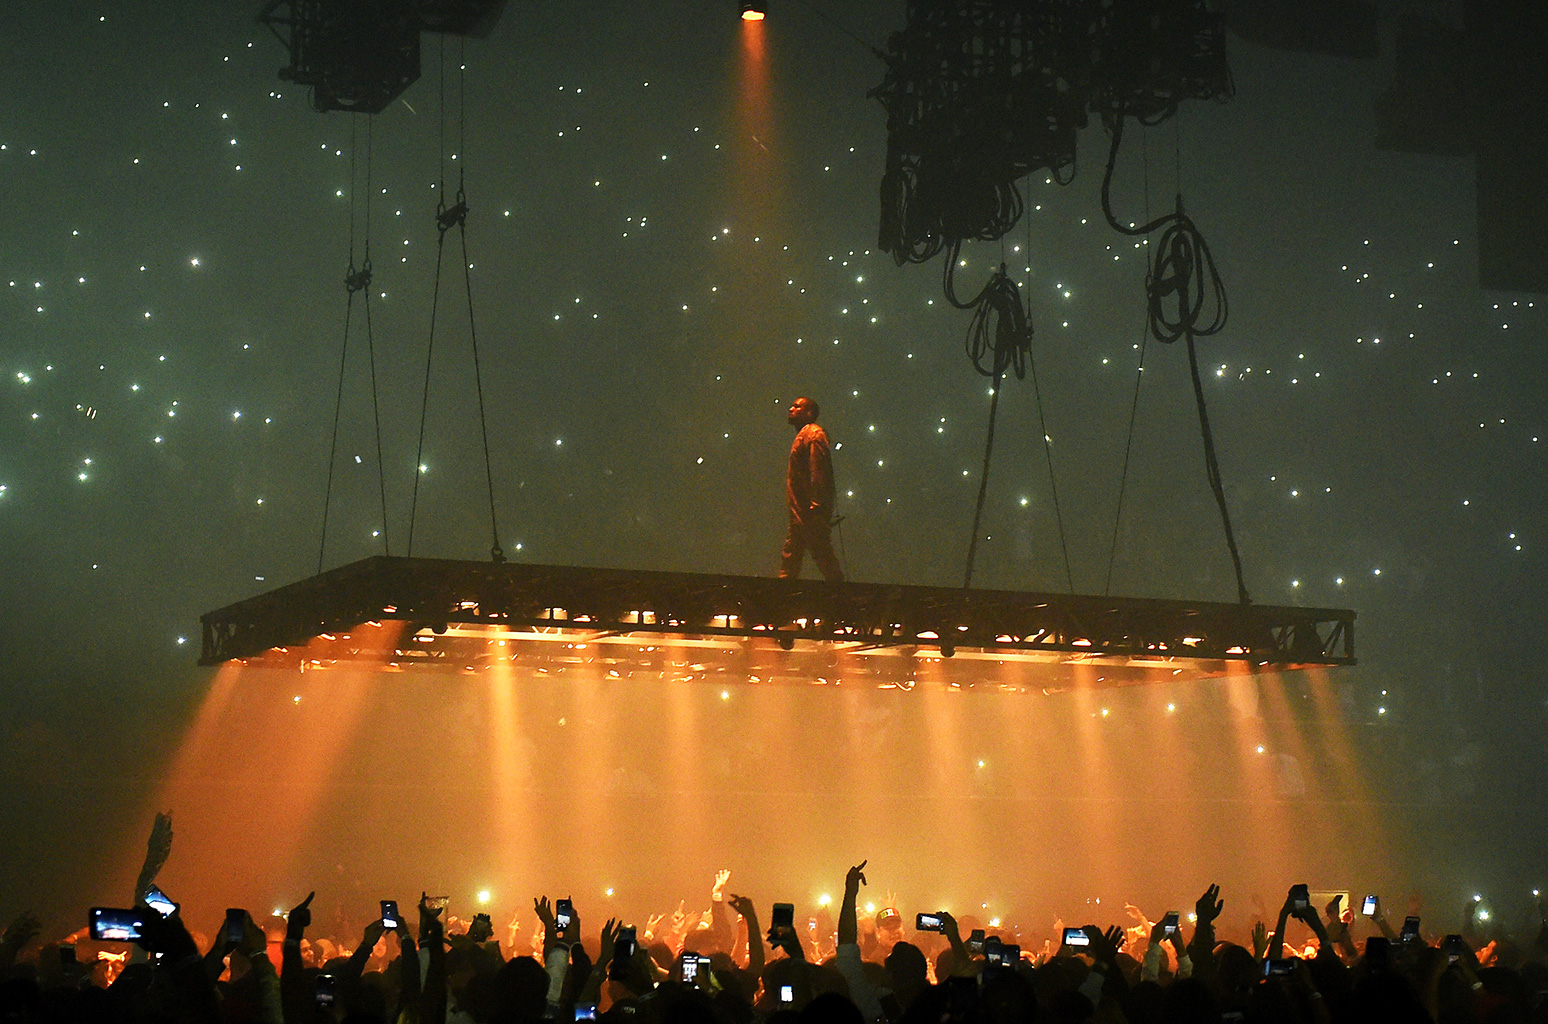 Kanye-West-forum-calif-2016-nov-billboard-1548.jpg